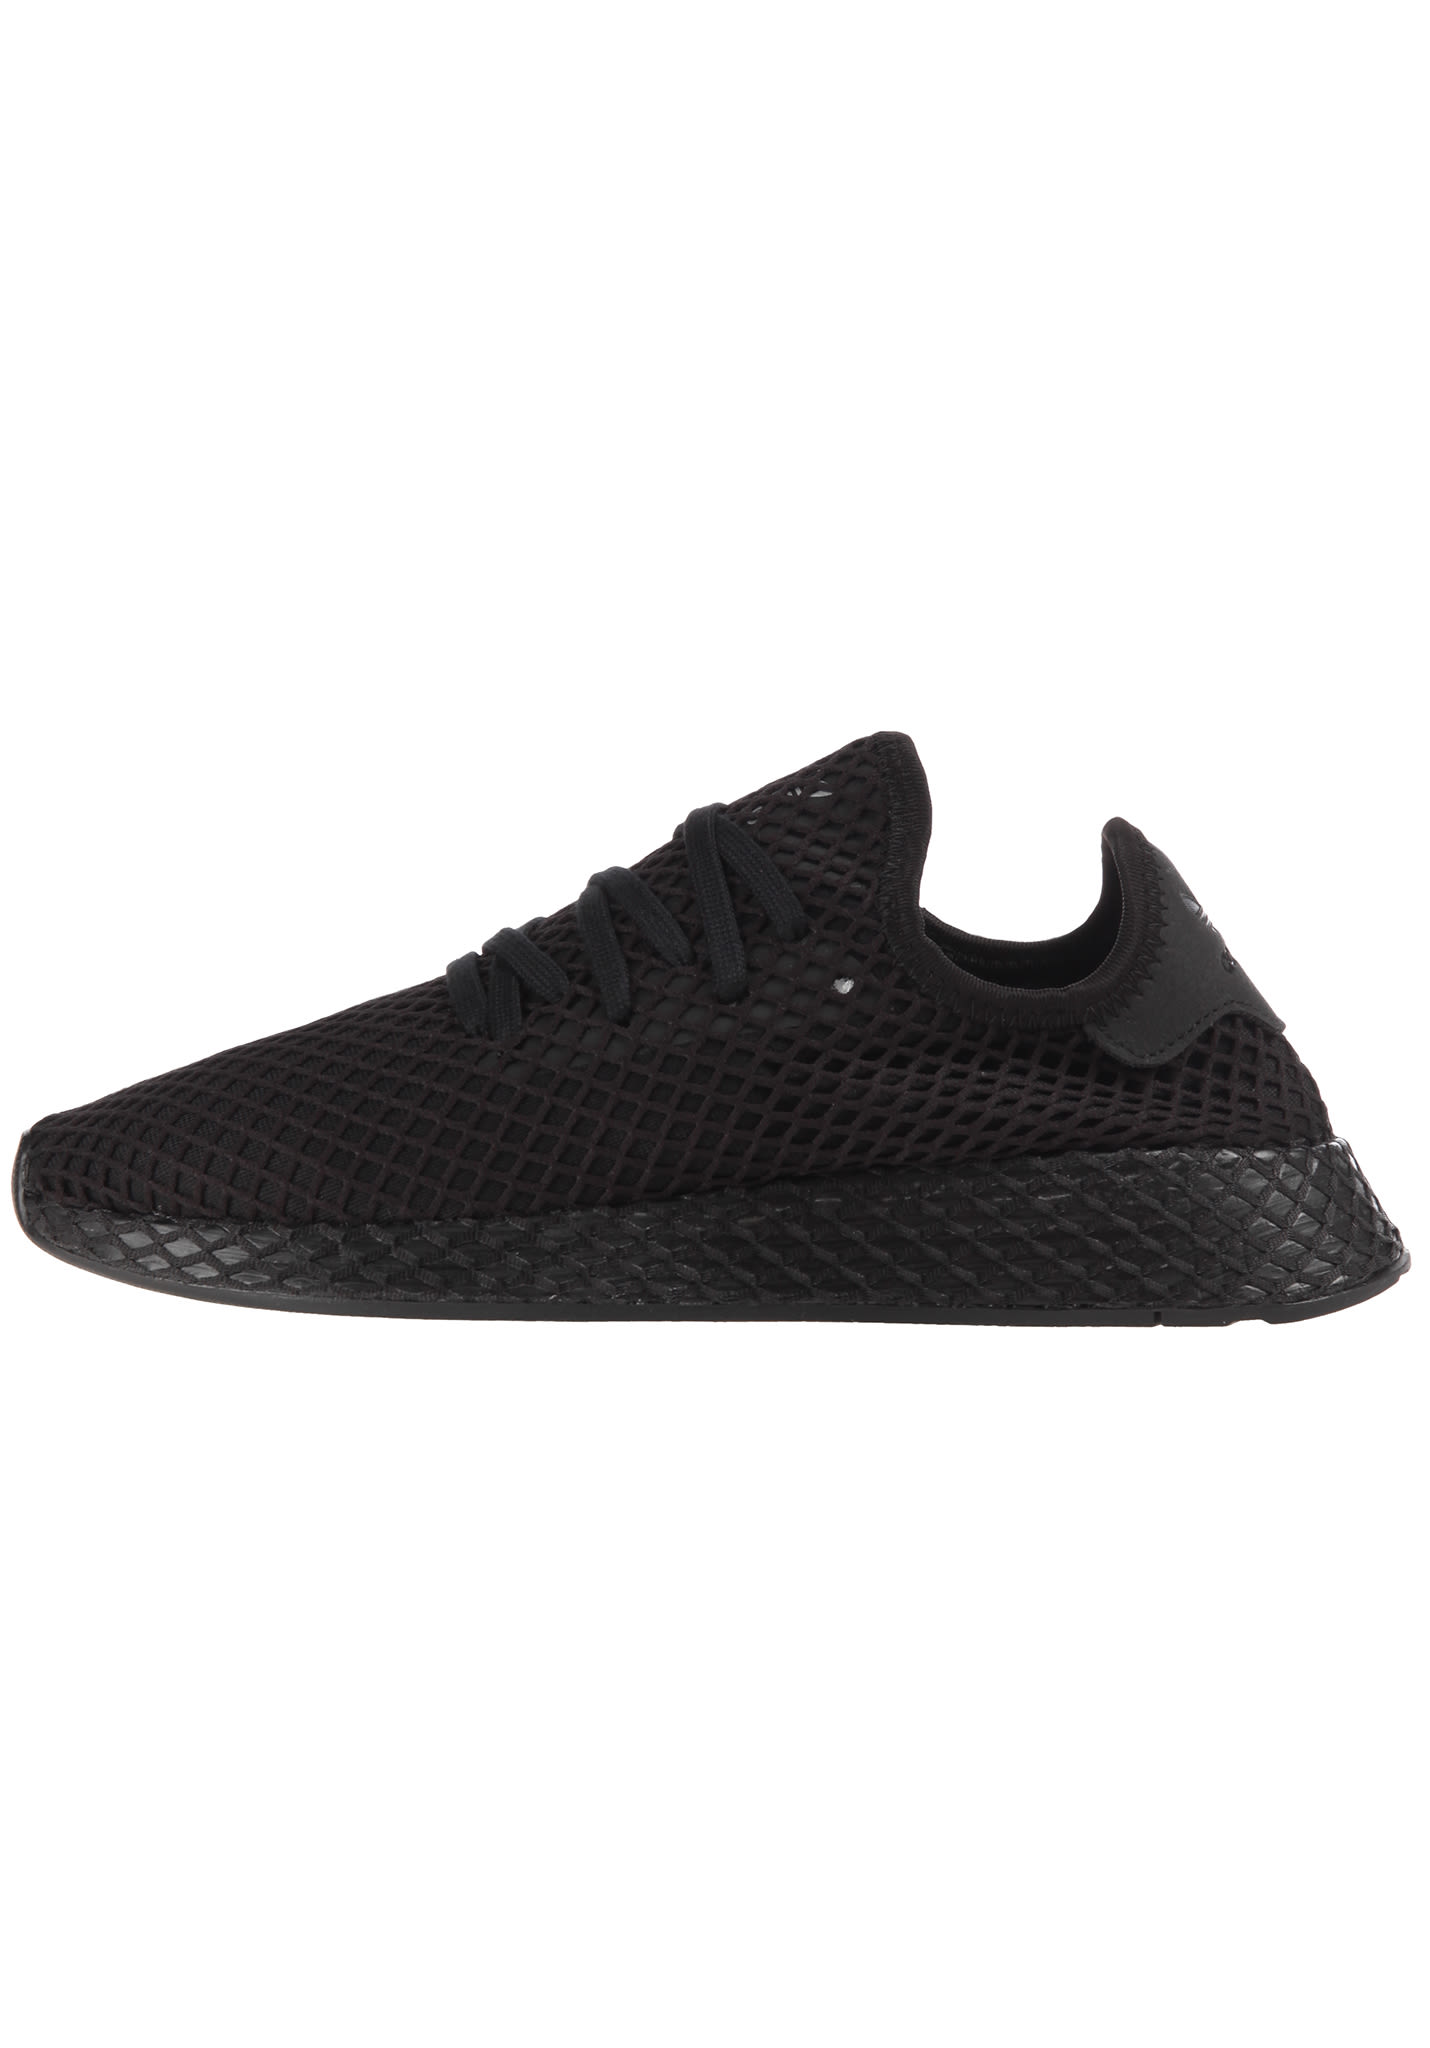 low priced 1100b 37220 ADIDAS ORIGINALS Deerupt Runner - Sneakers - Black - Planet Sports